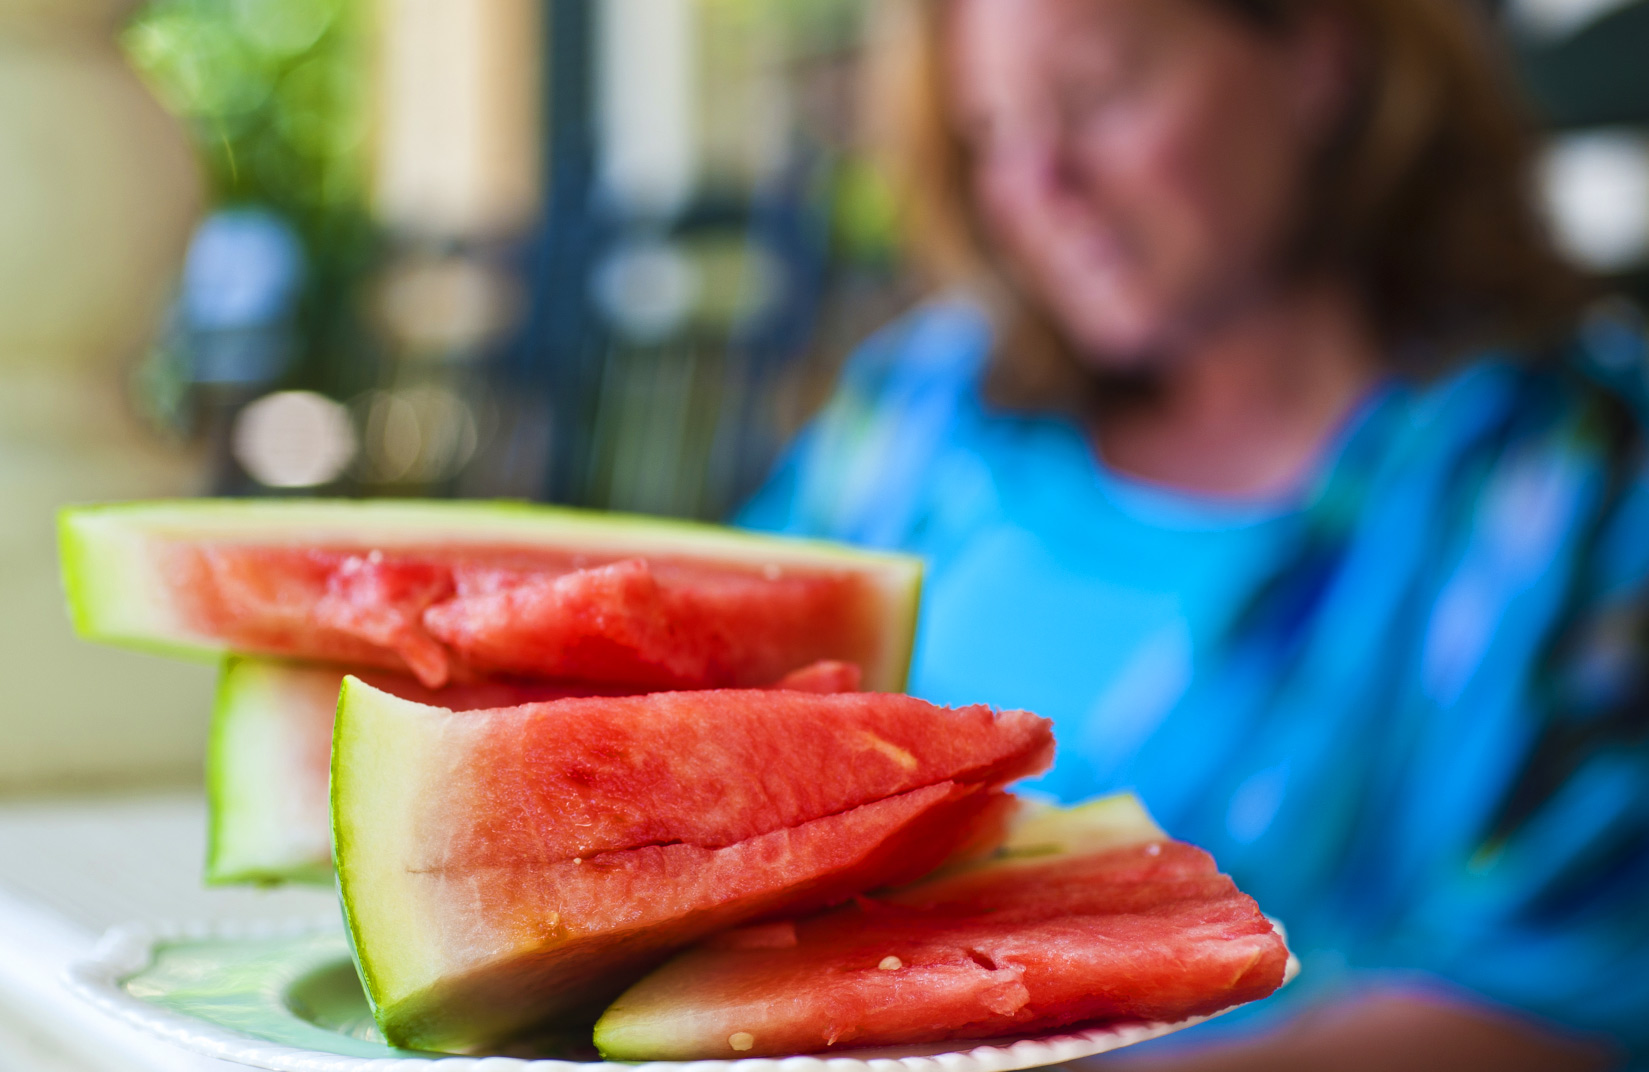 Durham food photography Bryan Regan water mellon